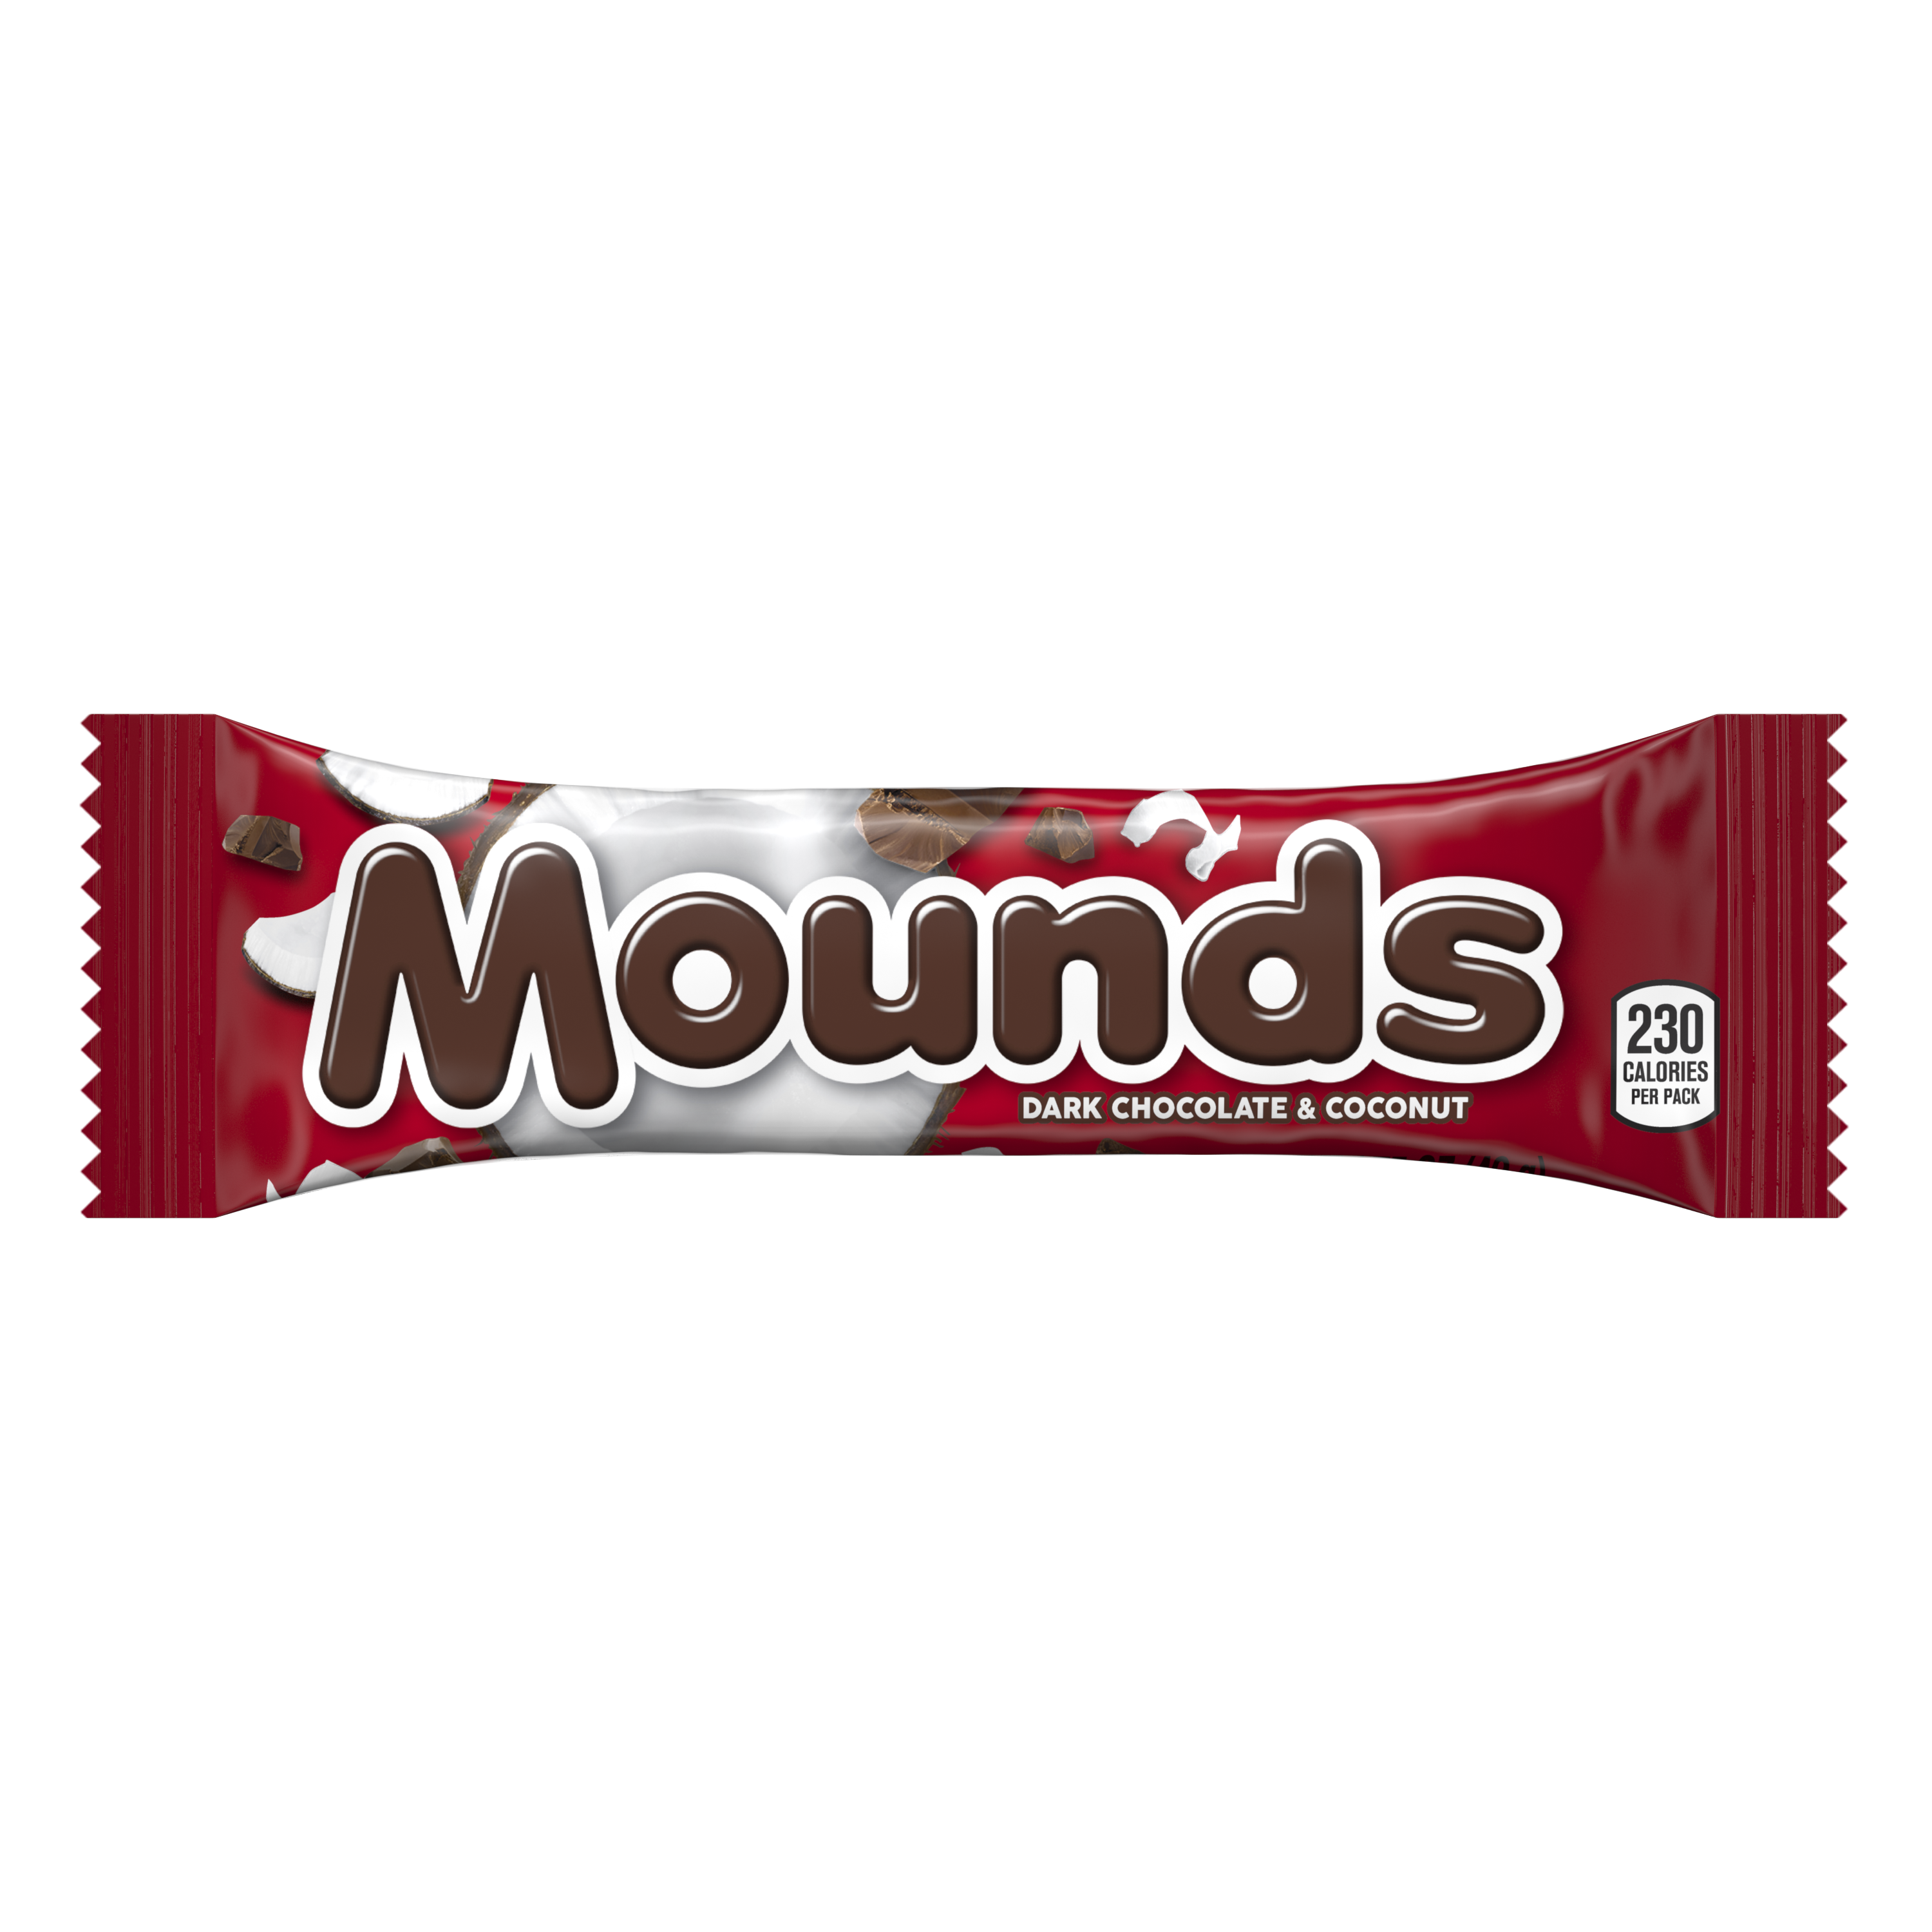 MOUNDS Dark Chocolate and Coconut Candy Bar, 1.75 oz - Front of Package